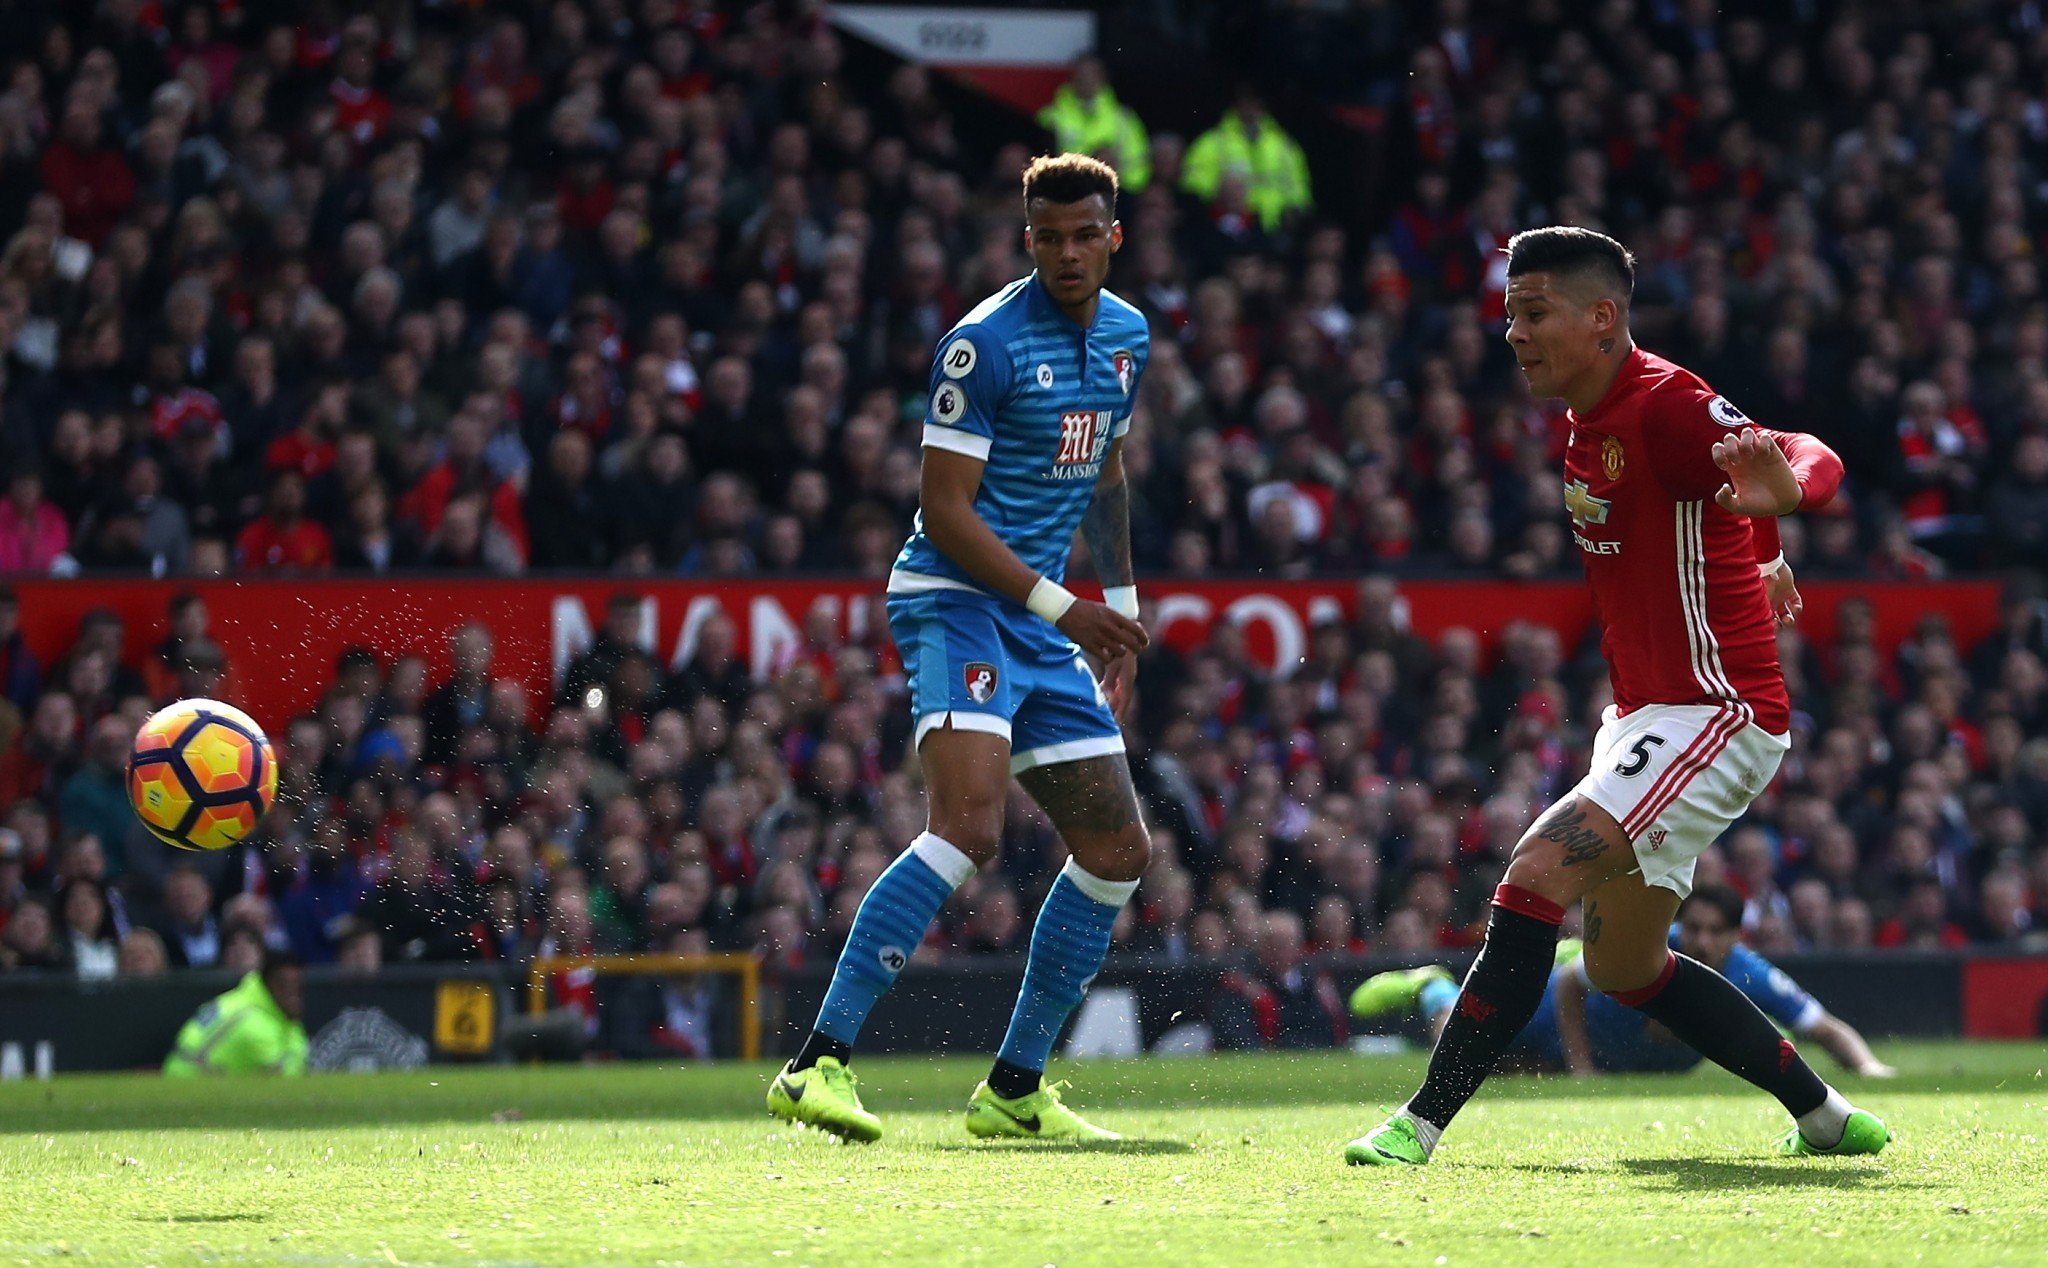 Marcos Rojo puts United 1-0 up